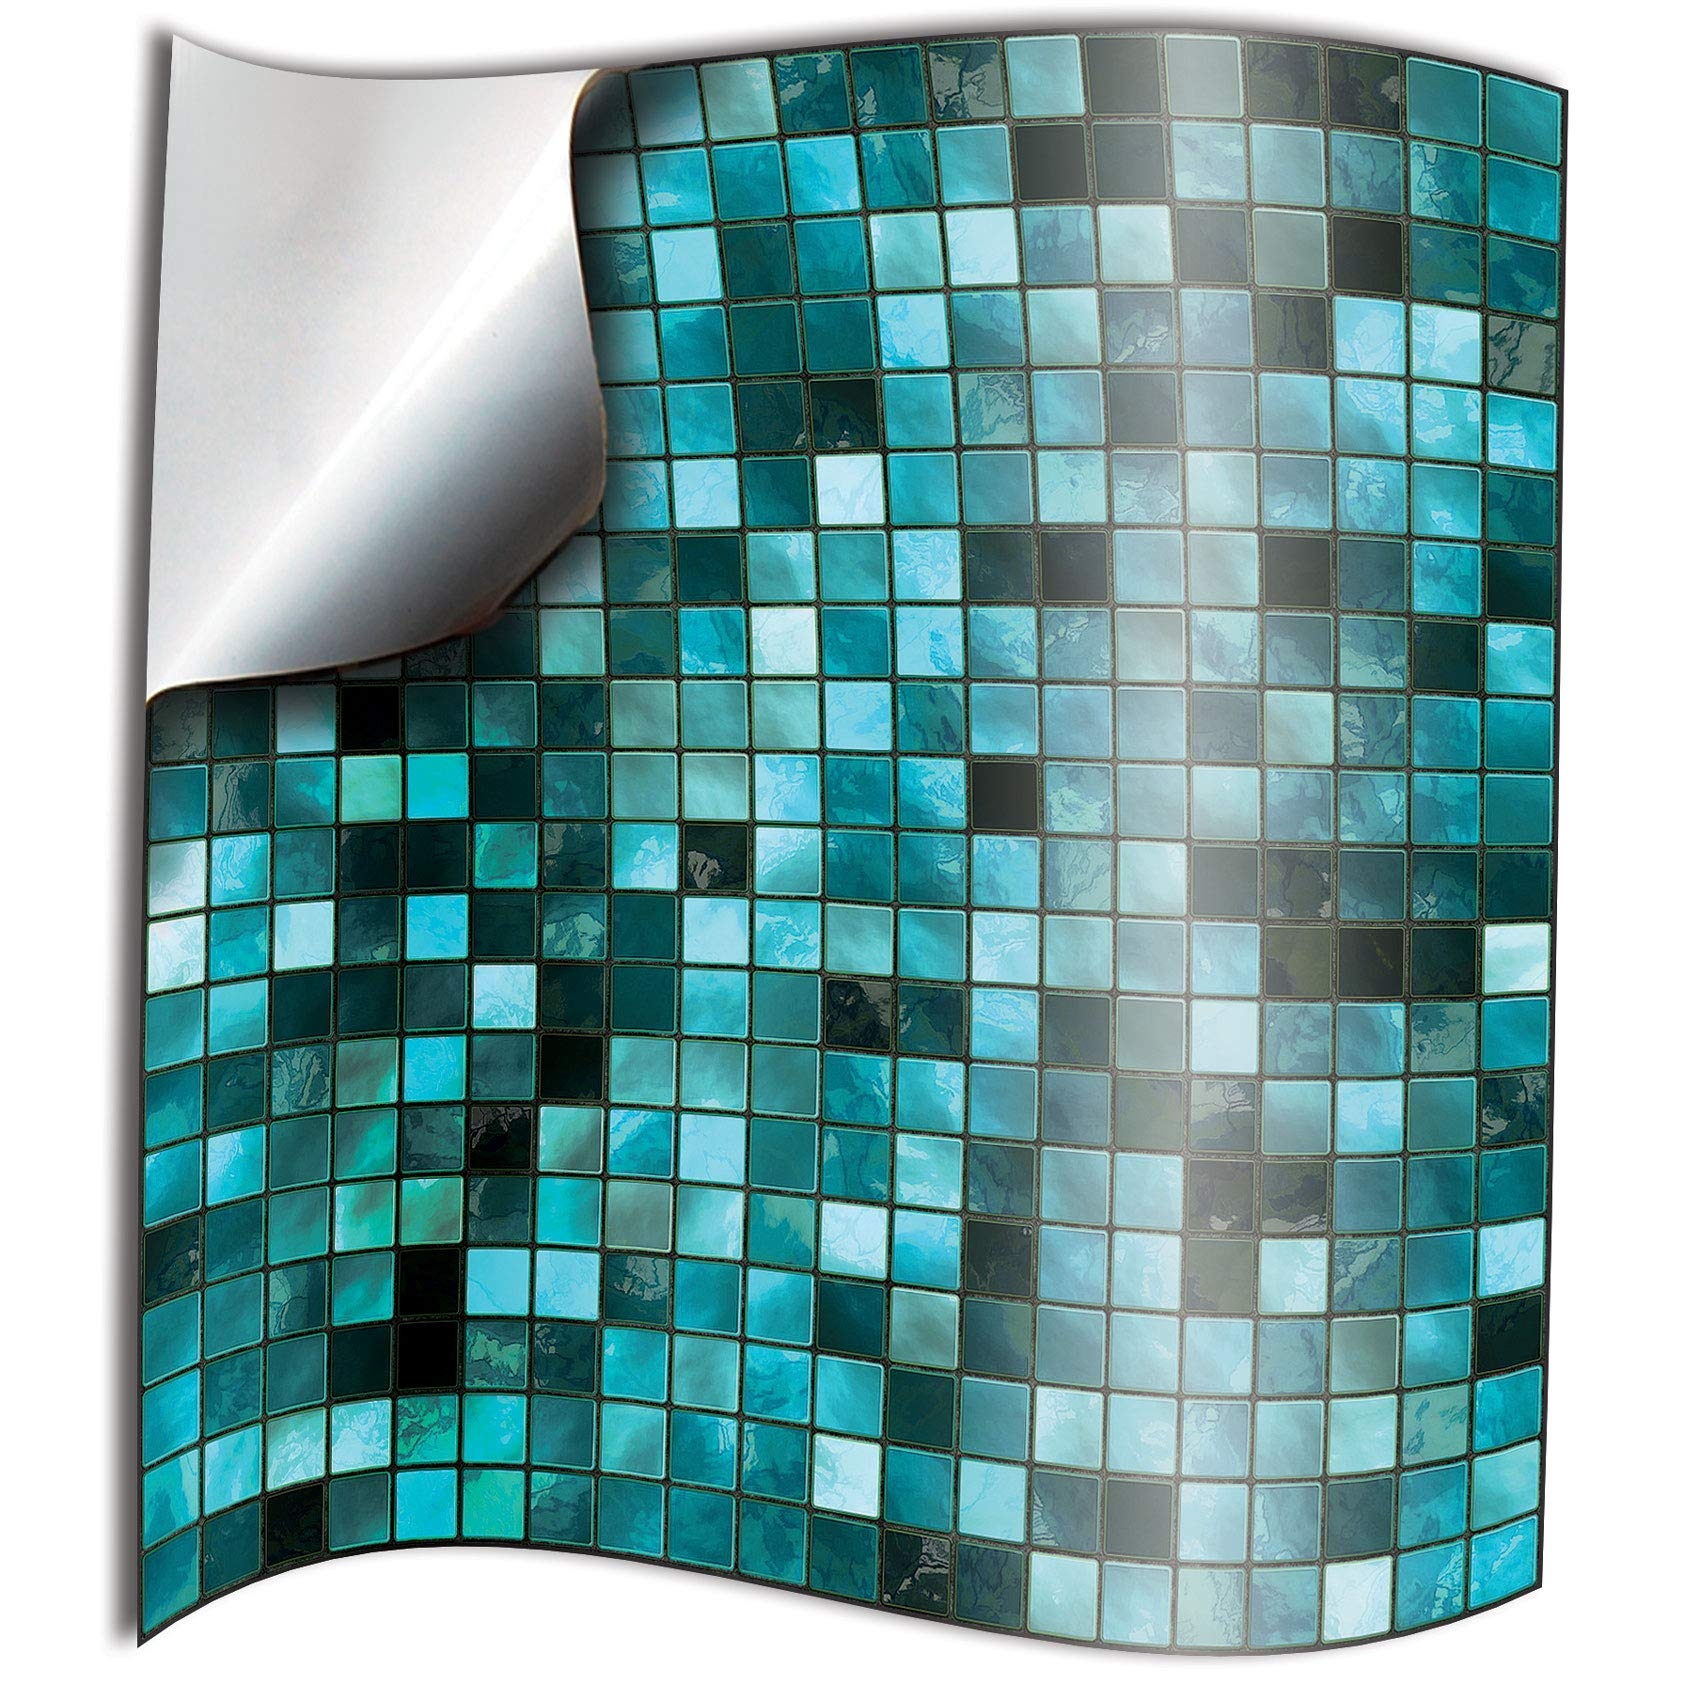 24pc Turquoise Thin Printed In 2d Kitchen Bathroom Tile Stickers To Cover 15cm Tp3 6 Inch Square Tiles Directly From Tile Style Decals Full Pack Of 24 Buy Online In Guernsey At Desertcart